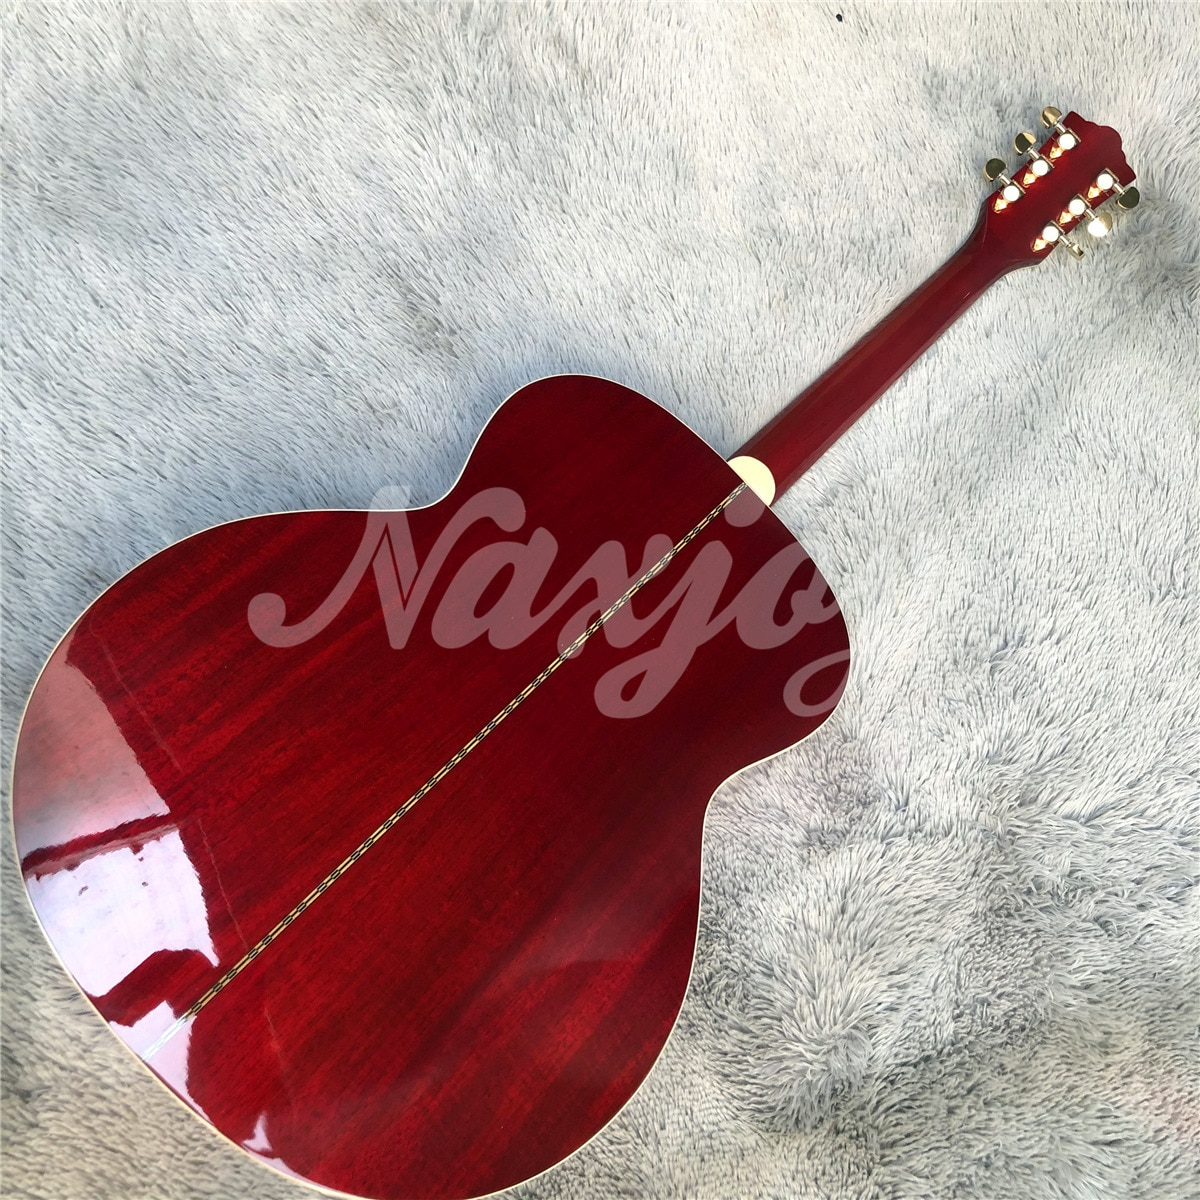 Professional 43 Inches Jumbo F50 Vintage Guitars Gloss Red Guild Acoustic Electric Guitar Free Shipping enlarge